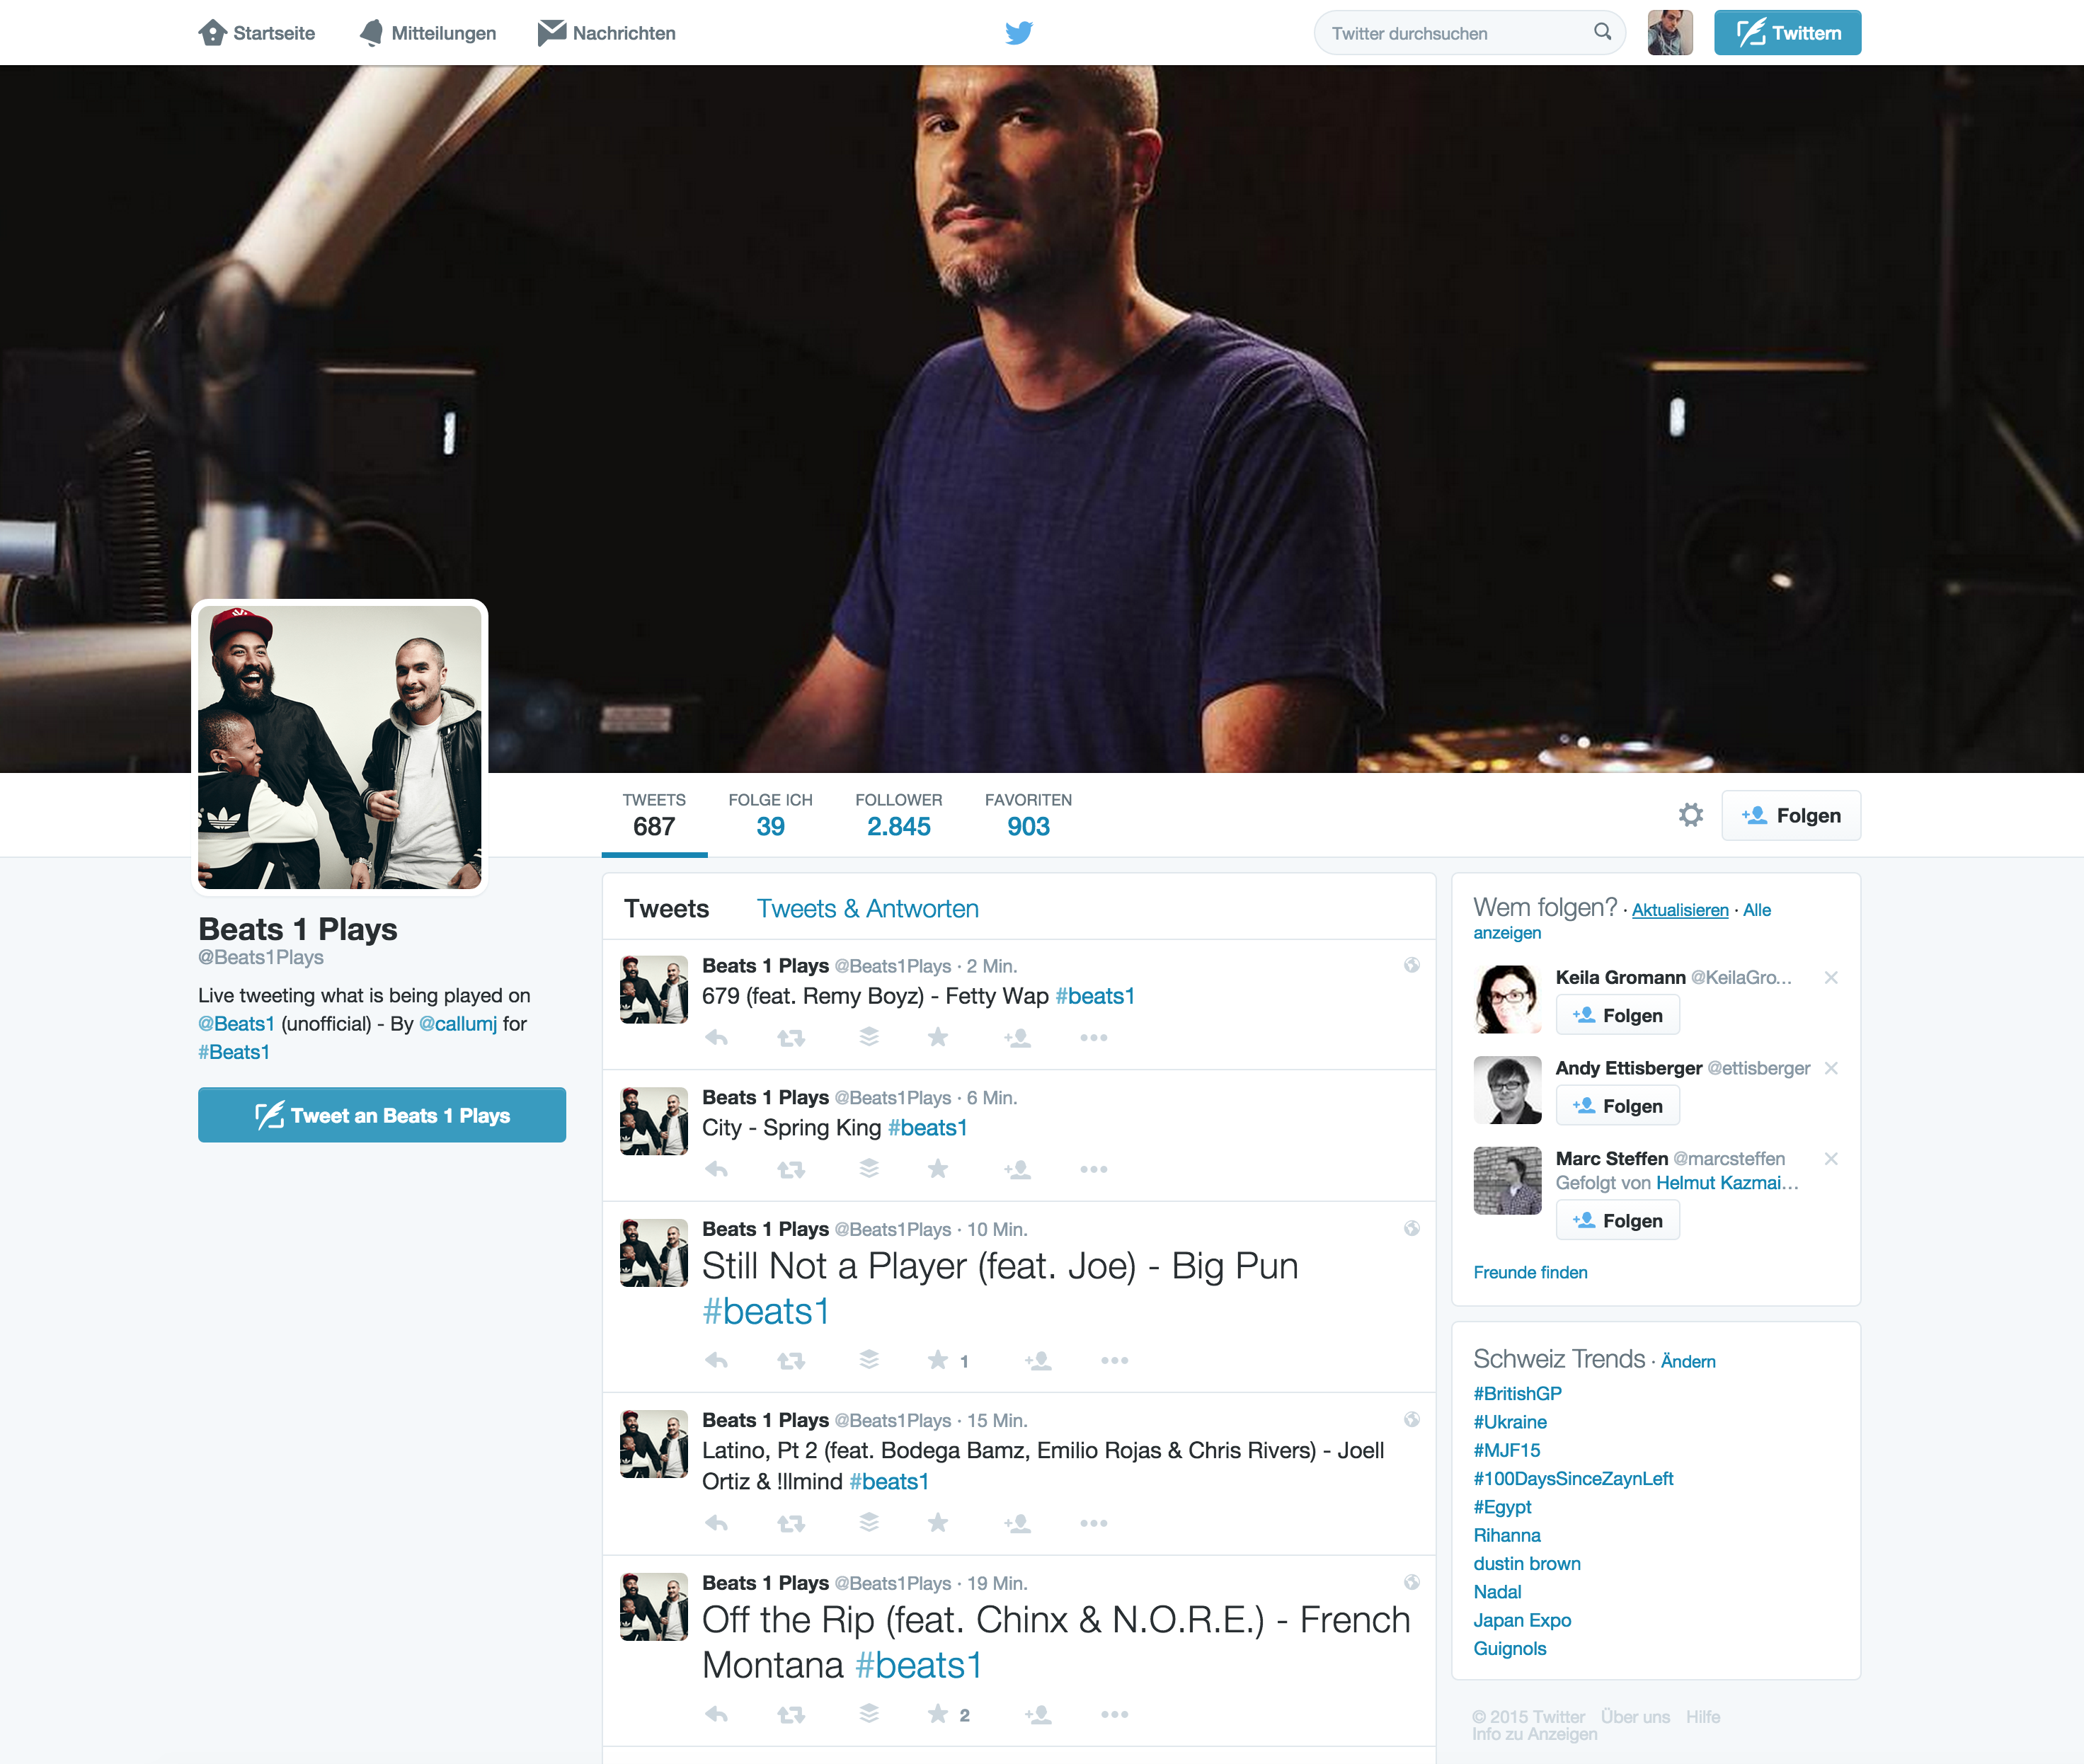 Twitter-Account von Beats 1 Plays